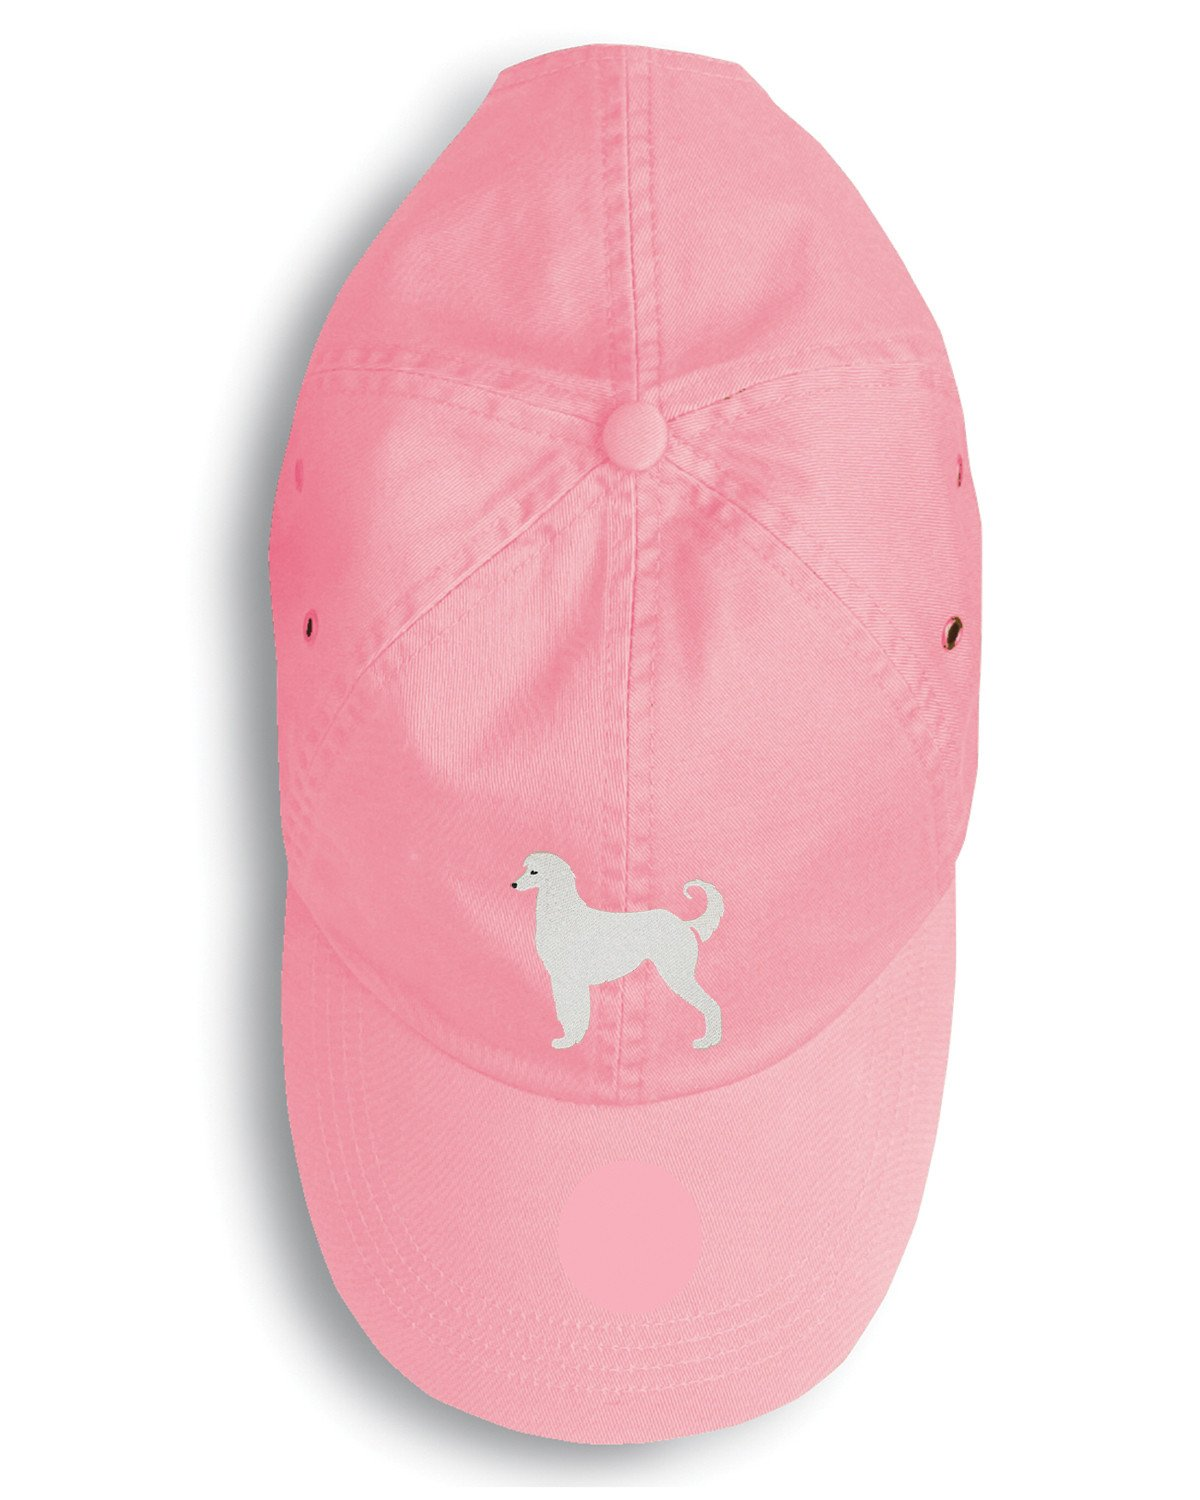 Afghan Hound Embroidered Baseball Cap BB3406PK-156 by Caroline's Treasures